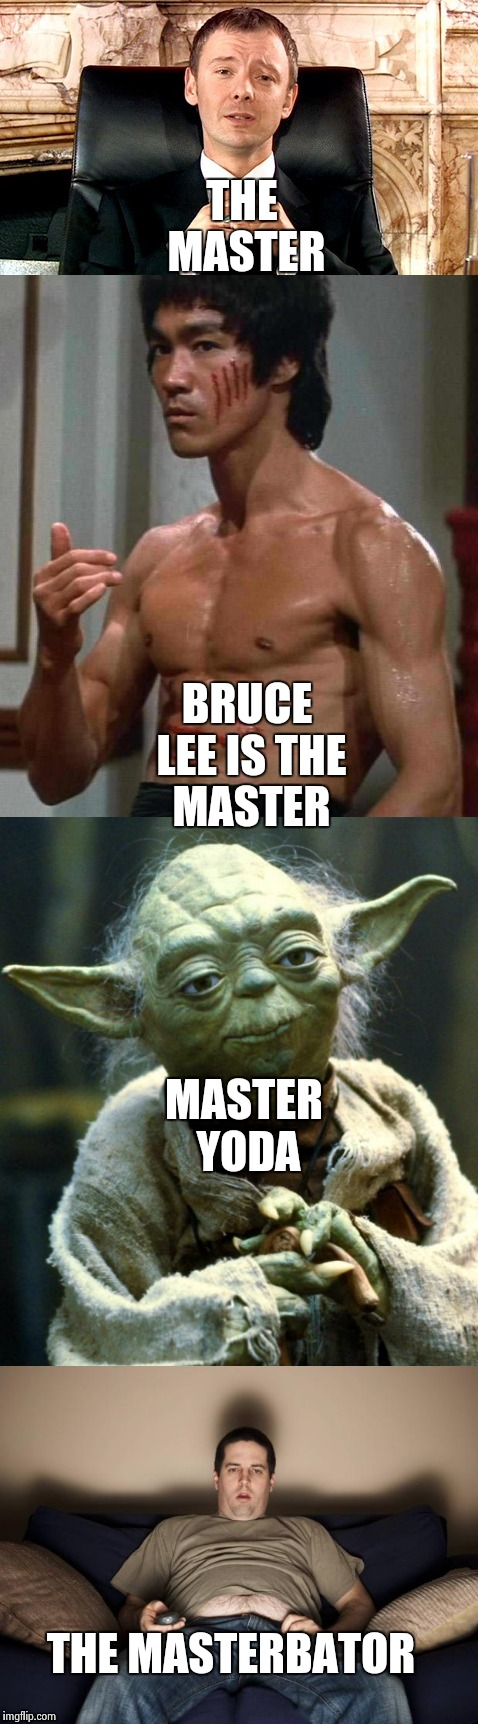 The Four Masters | THE MASTER THE MASTERBATOR BRUCE LEE IS THE MASTER MASTER YODA | image tagged in nsfw,bruce lee,star wars yoda,the master,doctor who,funny | made w/ Imgflip meme maker